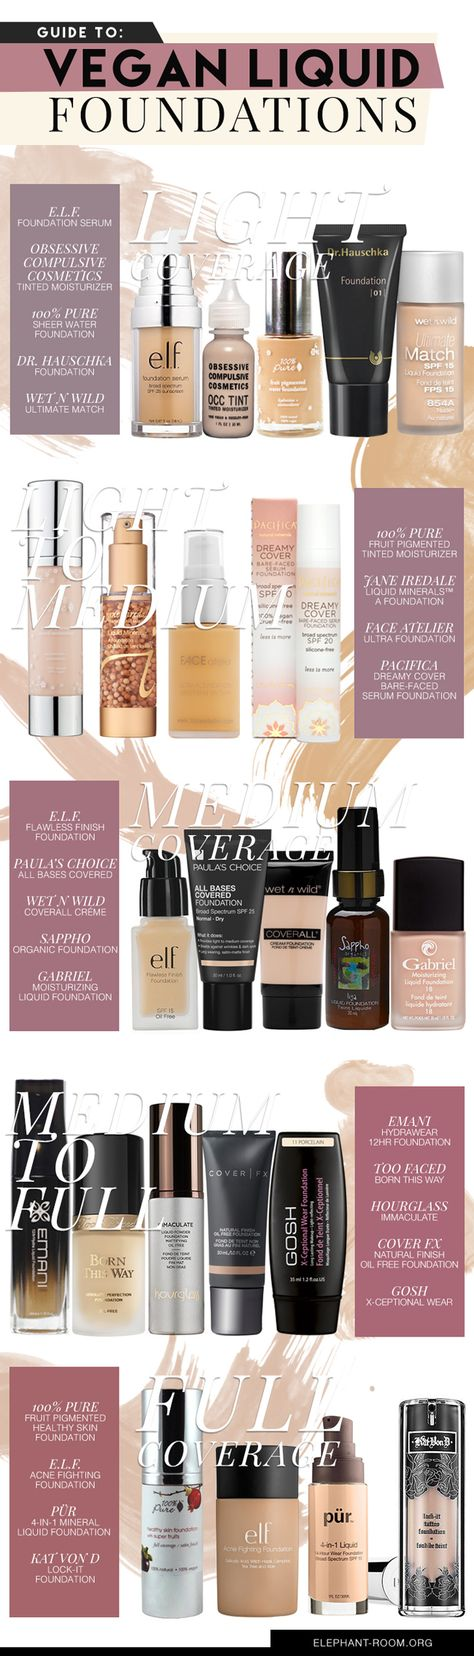 List of Vegan Foundations According to Coverage